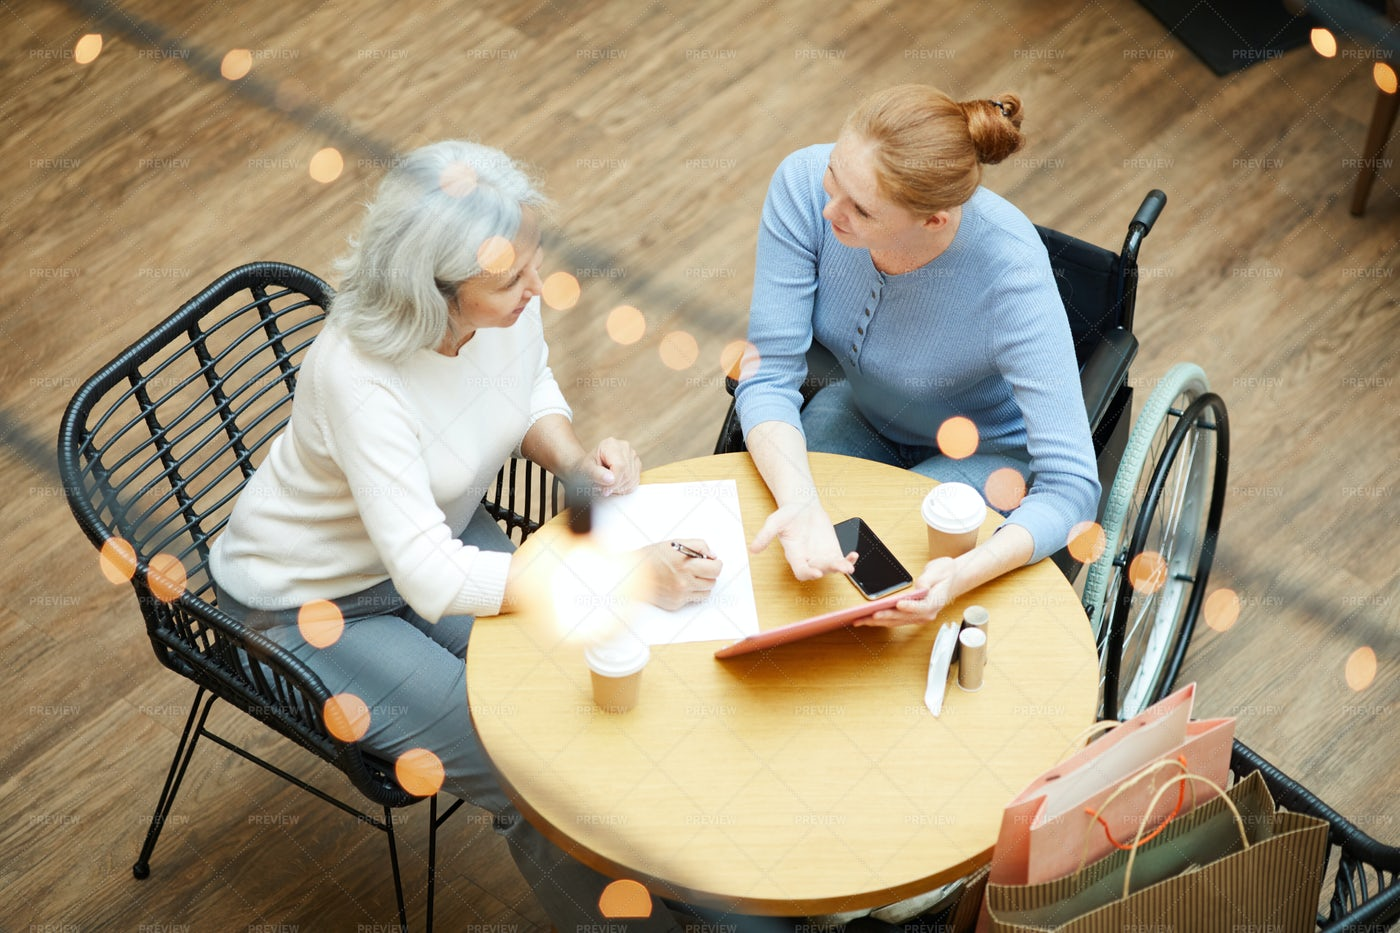 Family Meeting In Cafe: Stock Photos